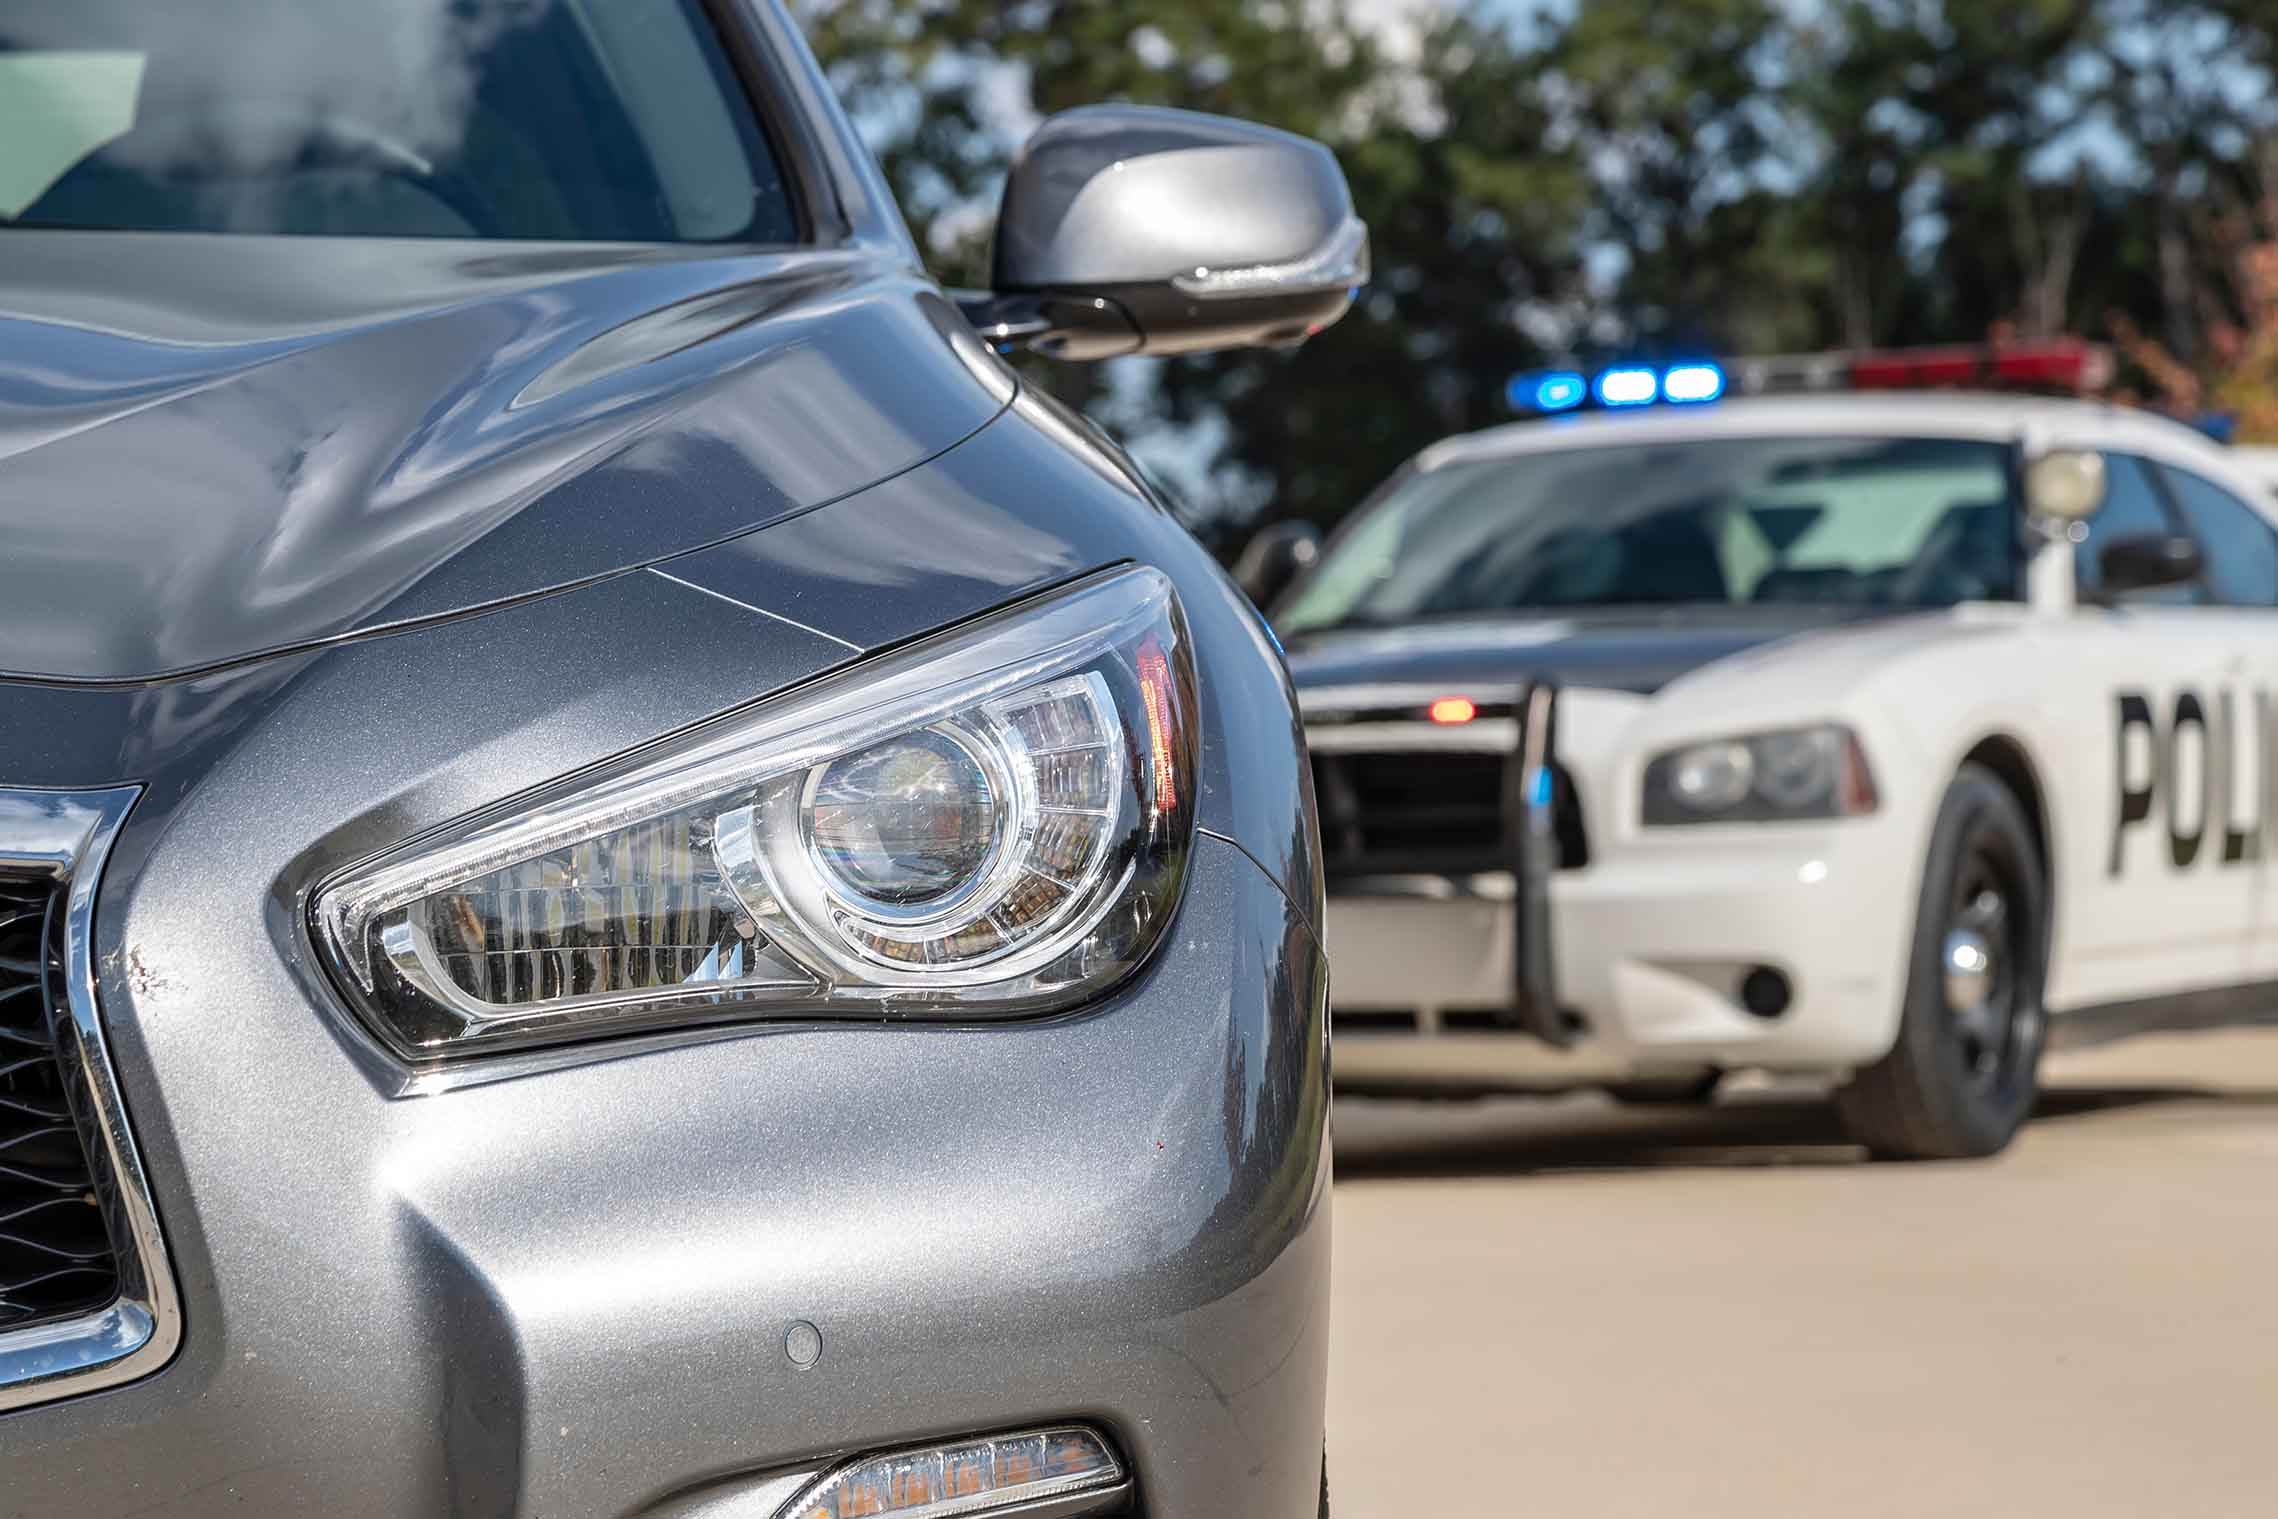 Understanding the OWI/DUI Charges Against You